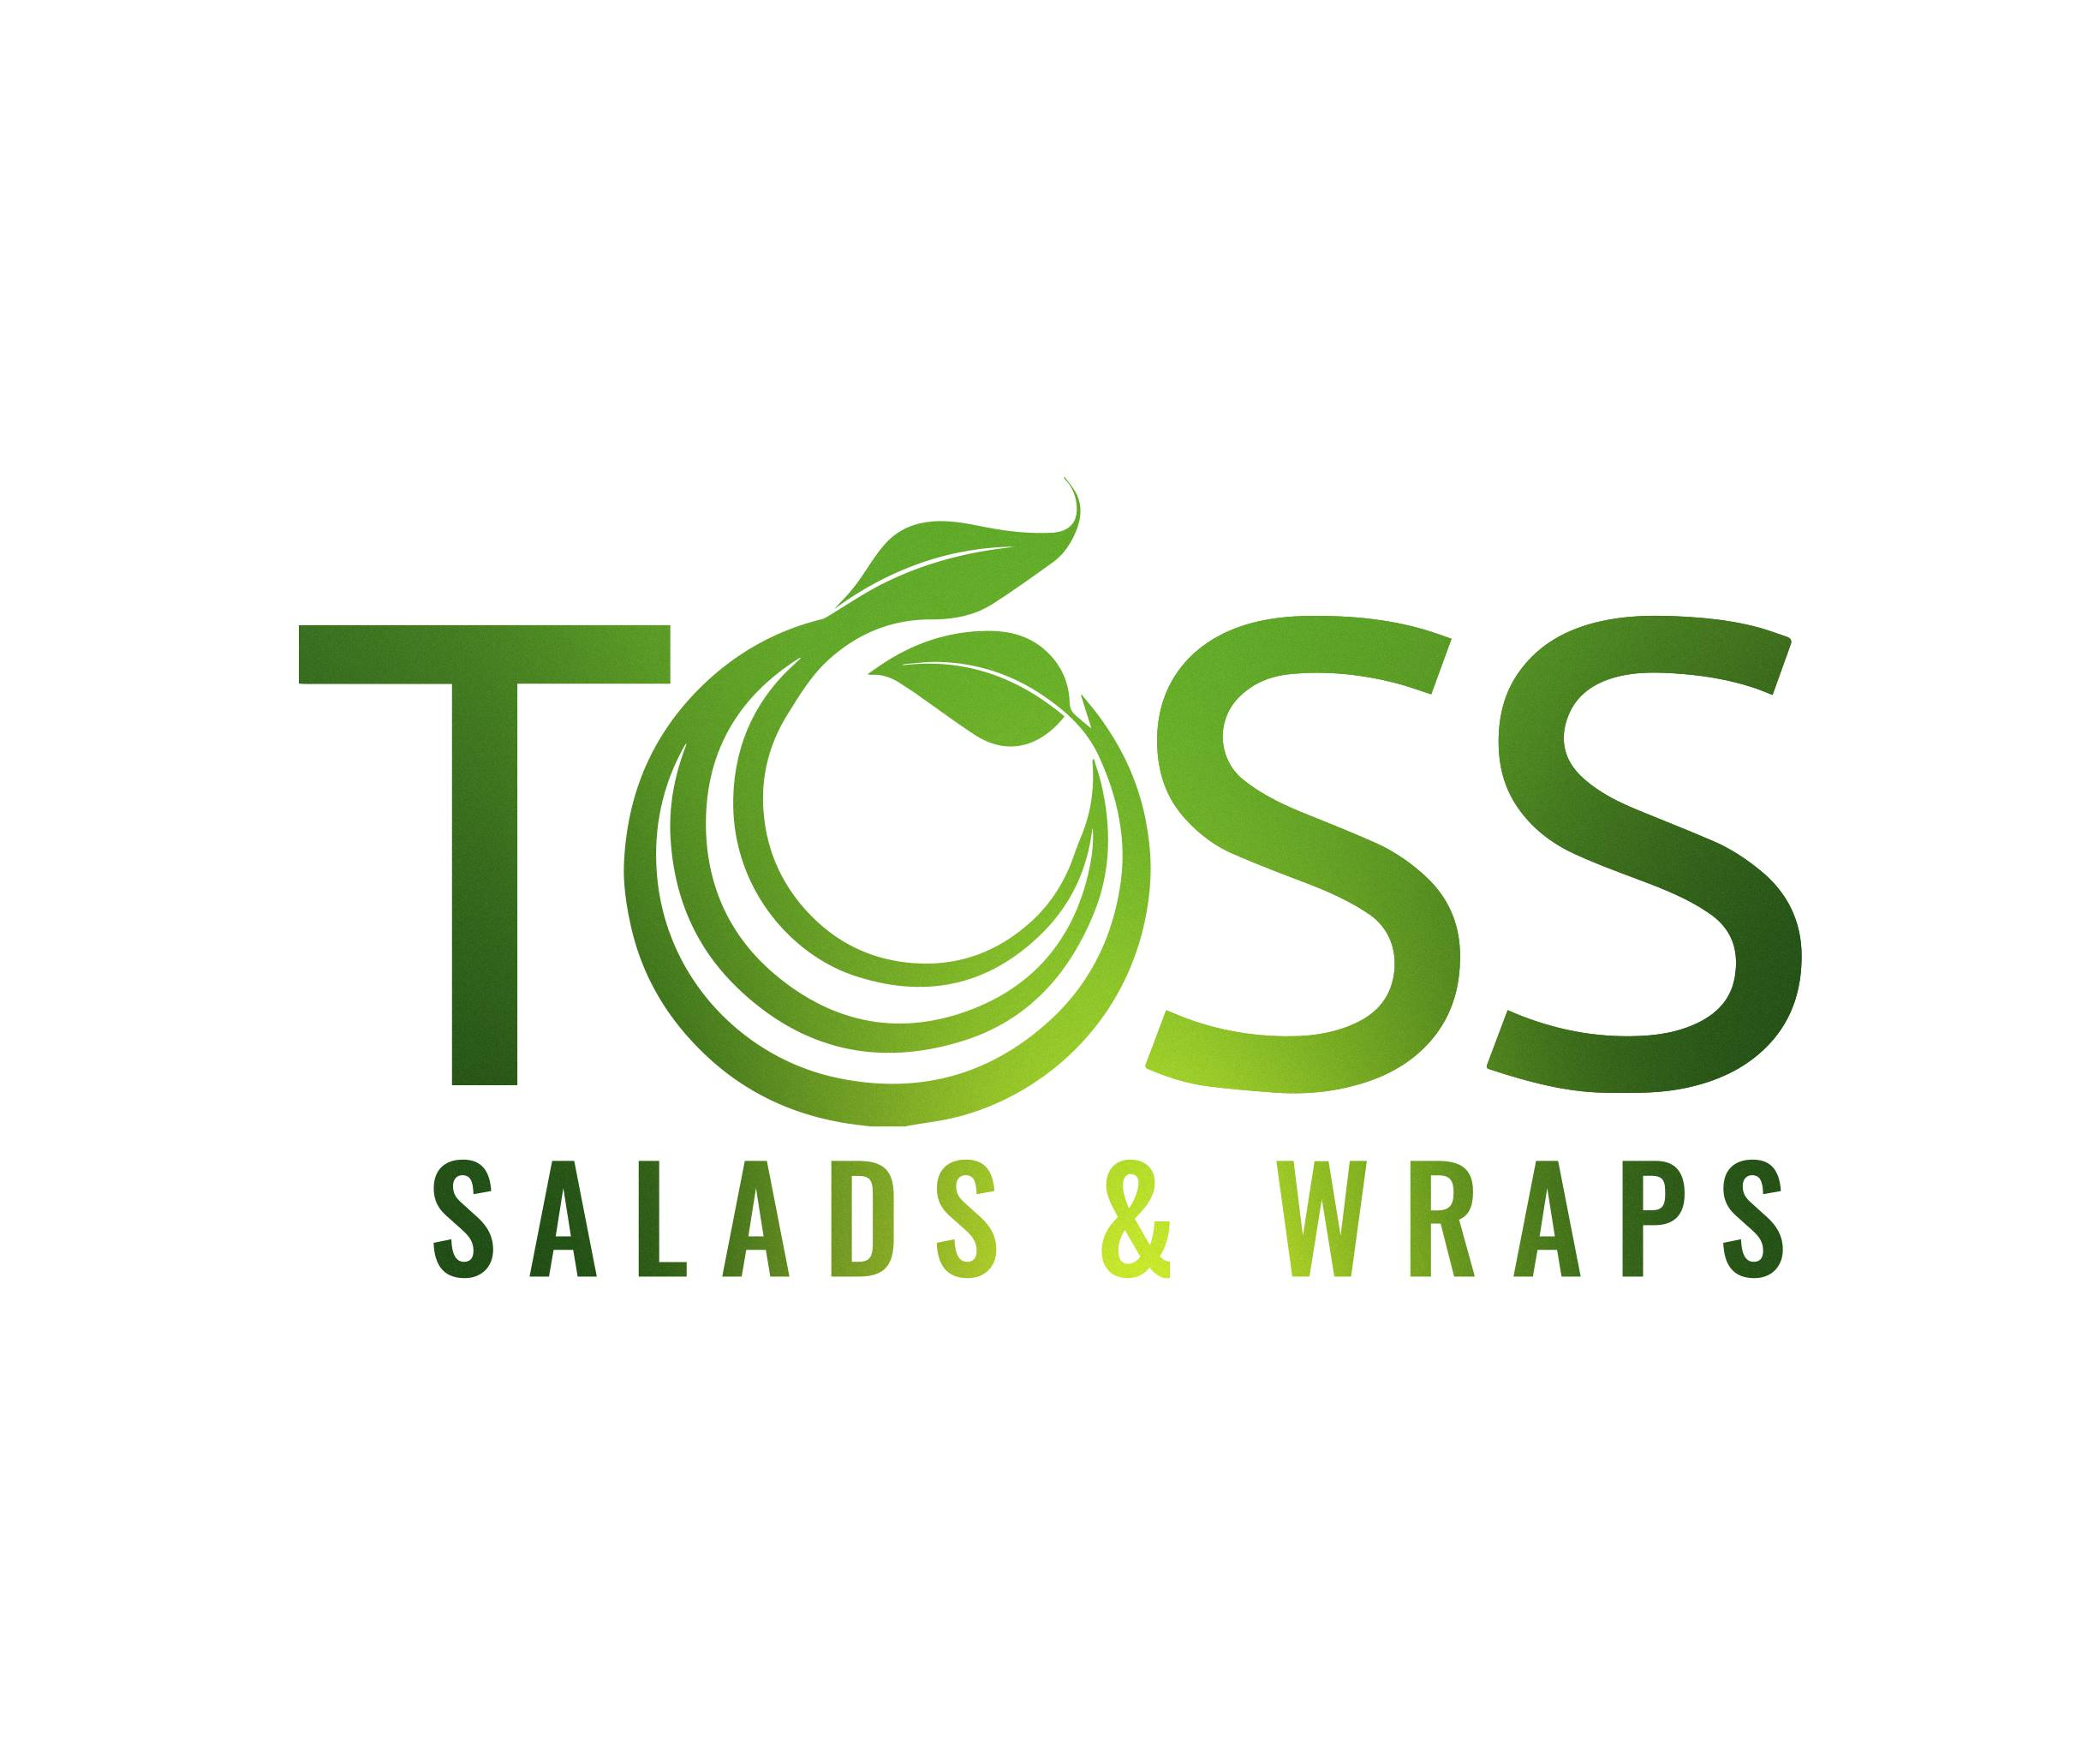 Toss Salads & Wraps